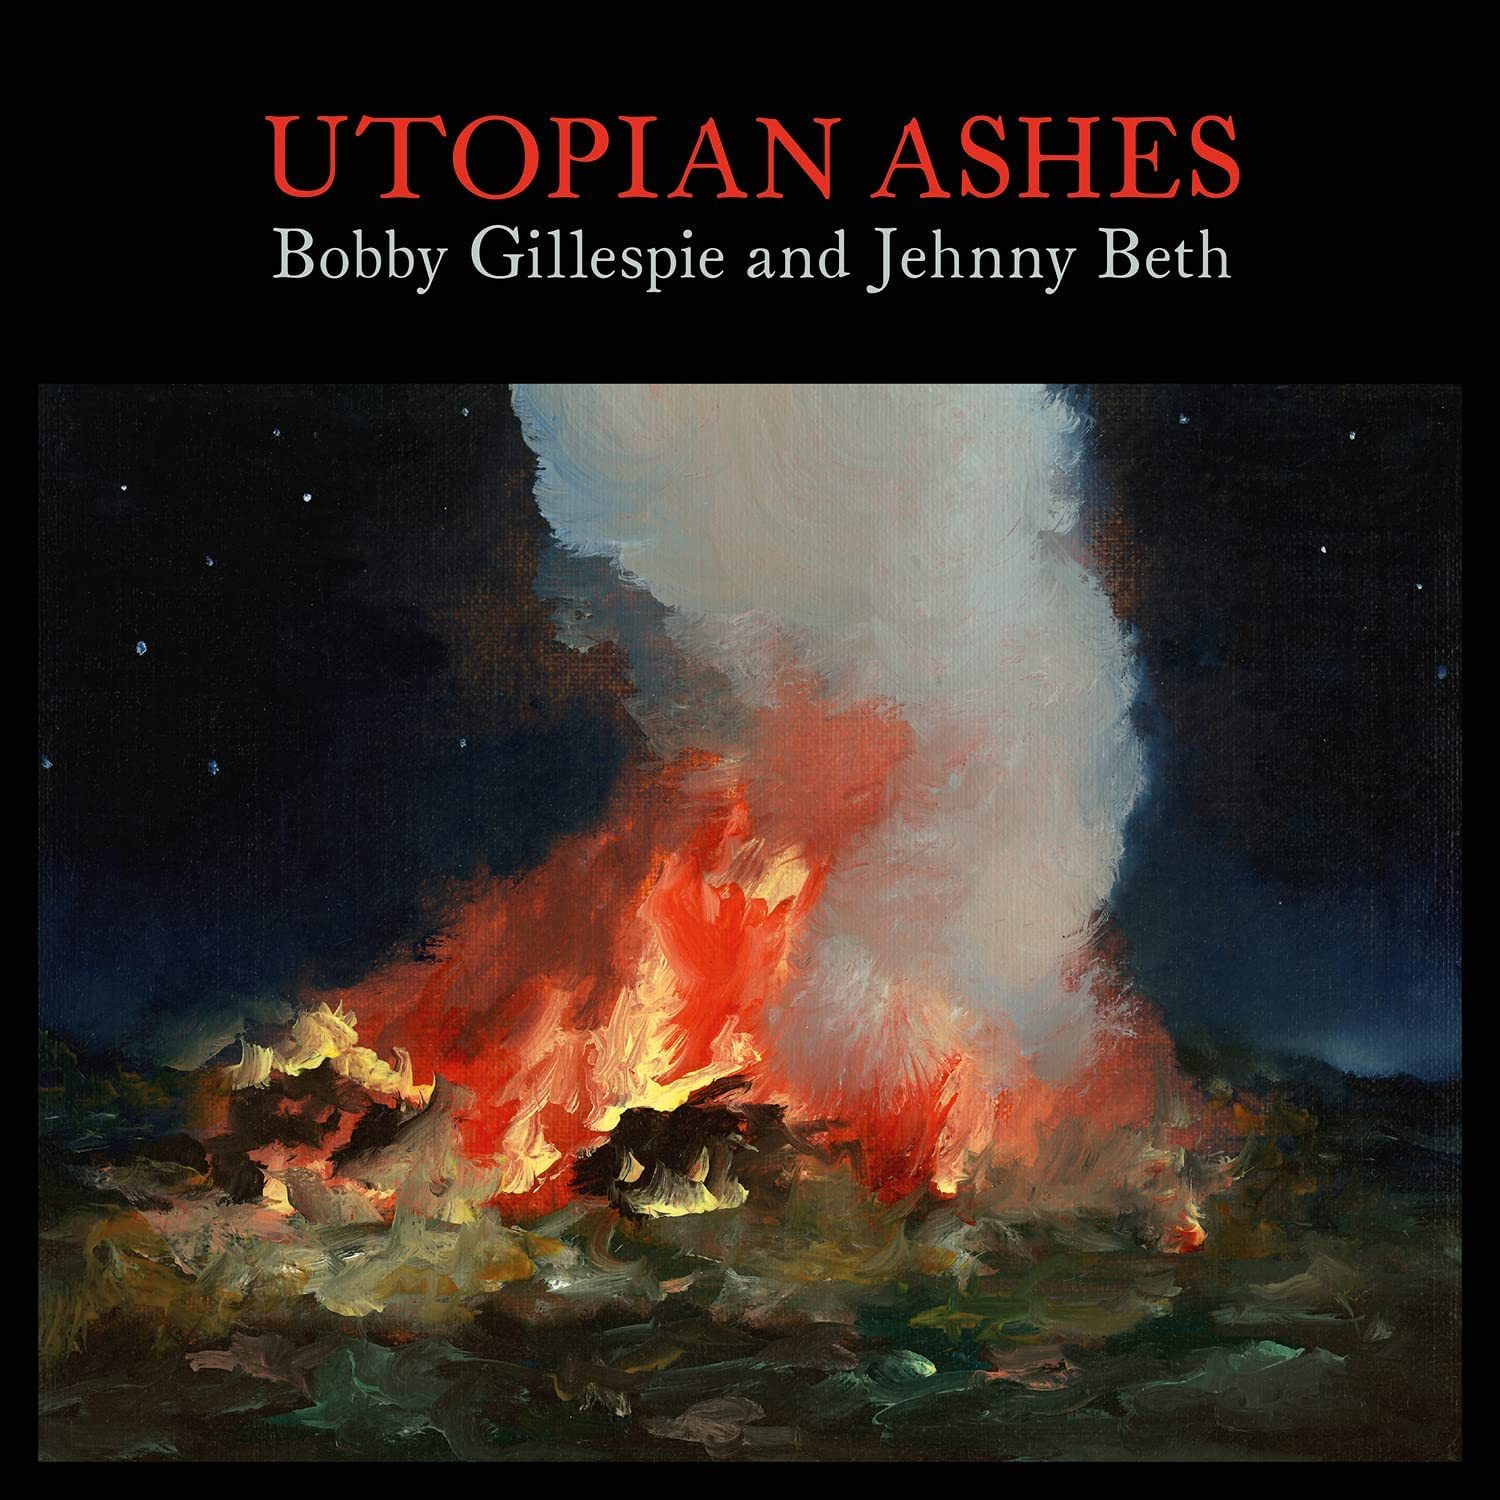 Bobby Gillespie and Jehnny Beth - Utopian Ashes | Reviews | DIY